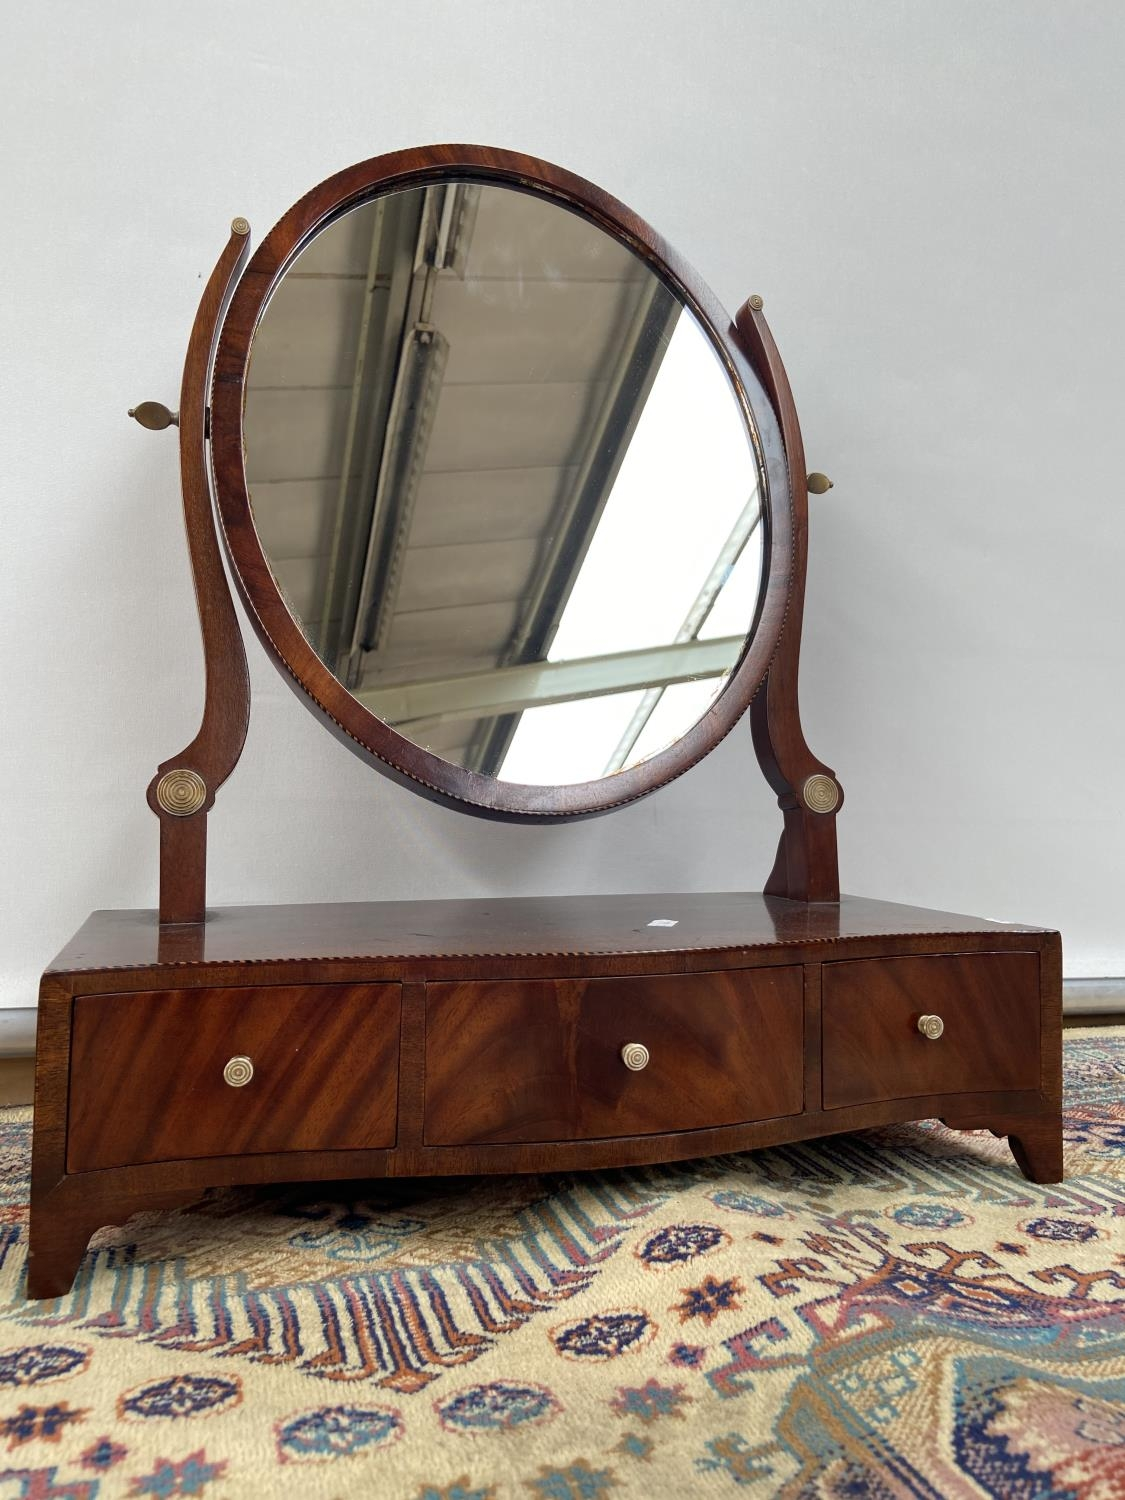 A Victorian dressing table mirror, upon a 3 drawer platform, detailed with ivory handles and a twist